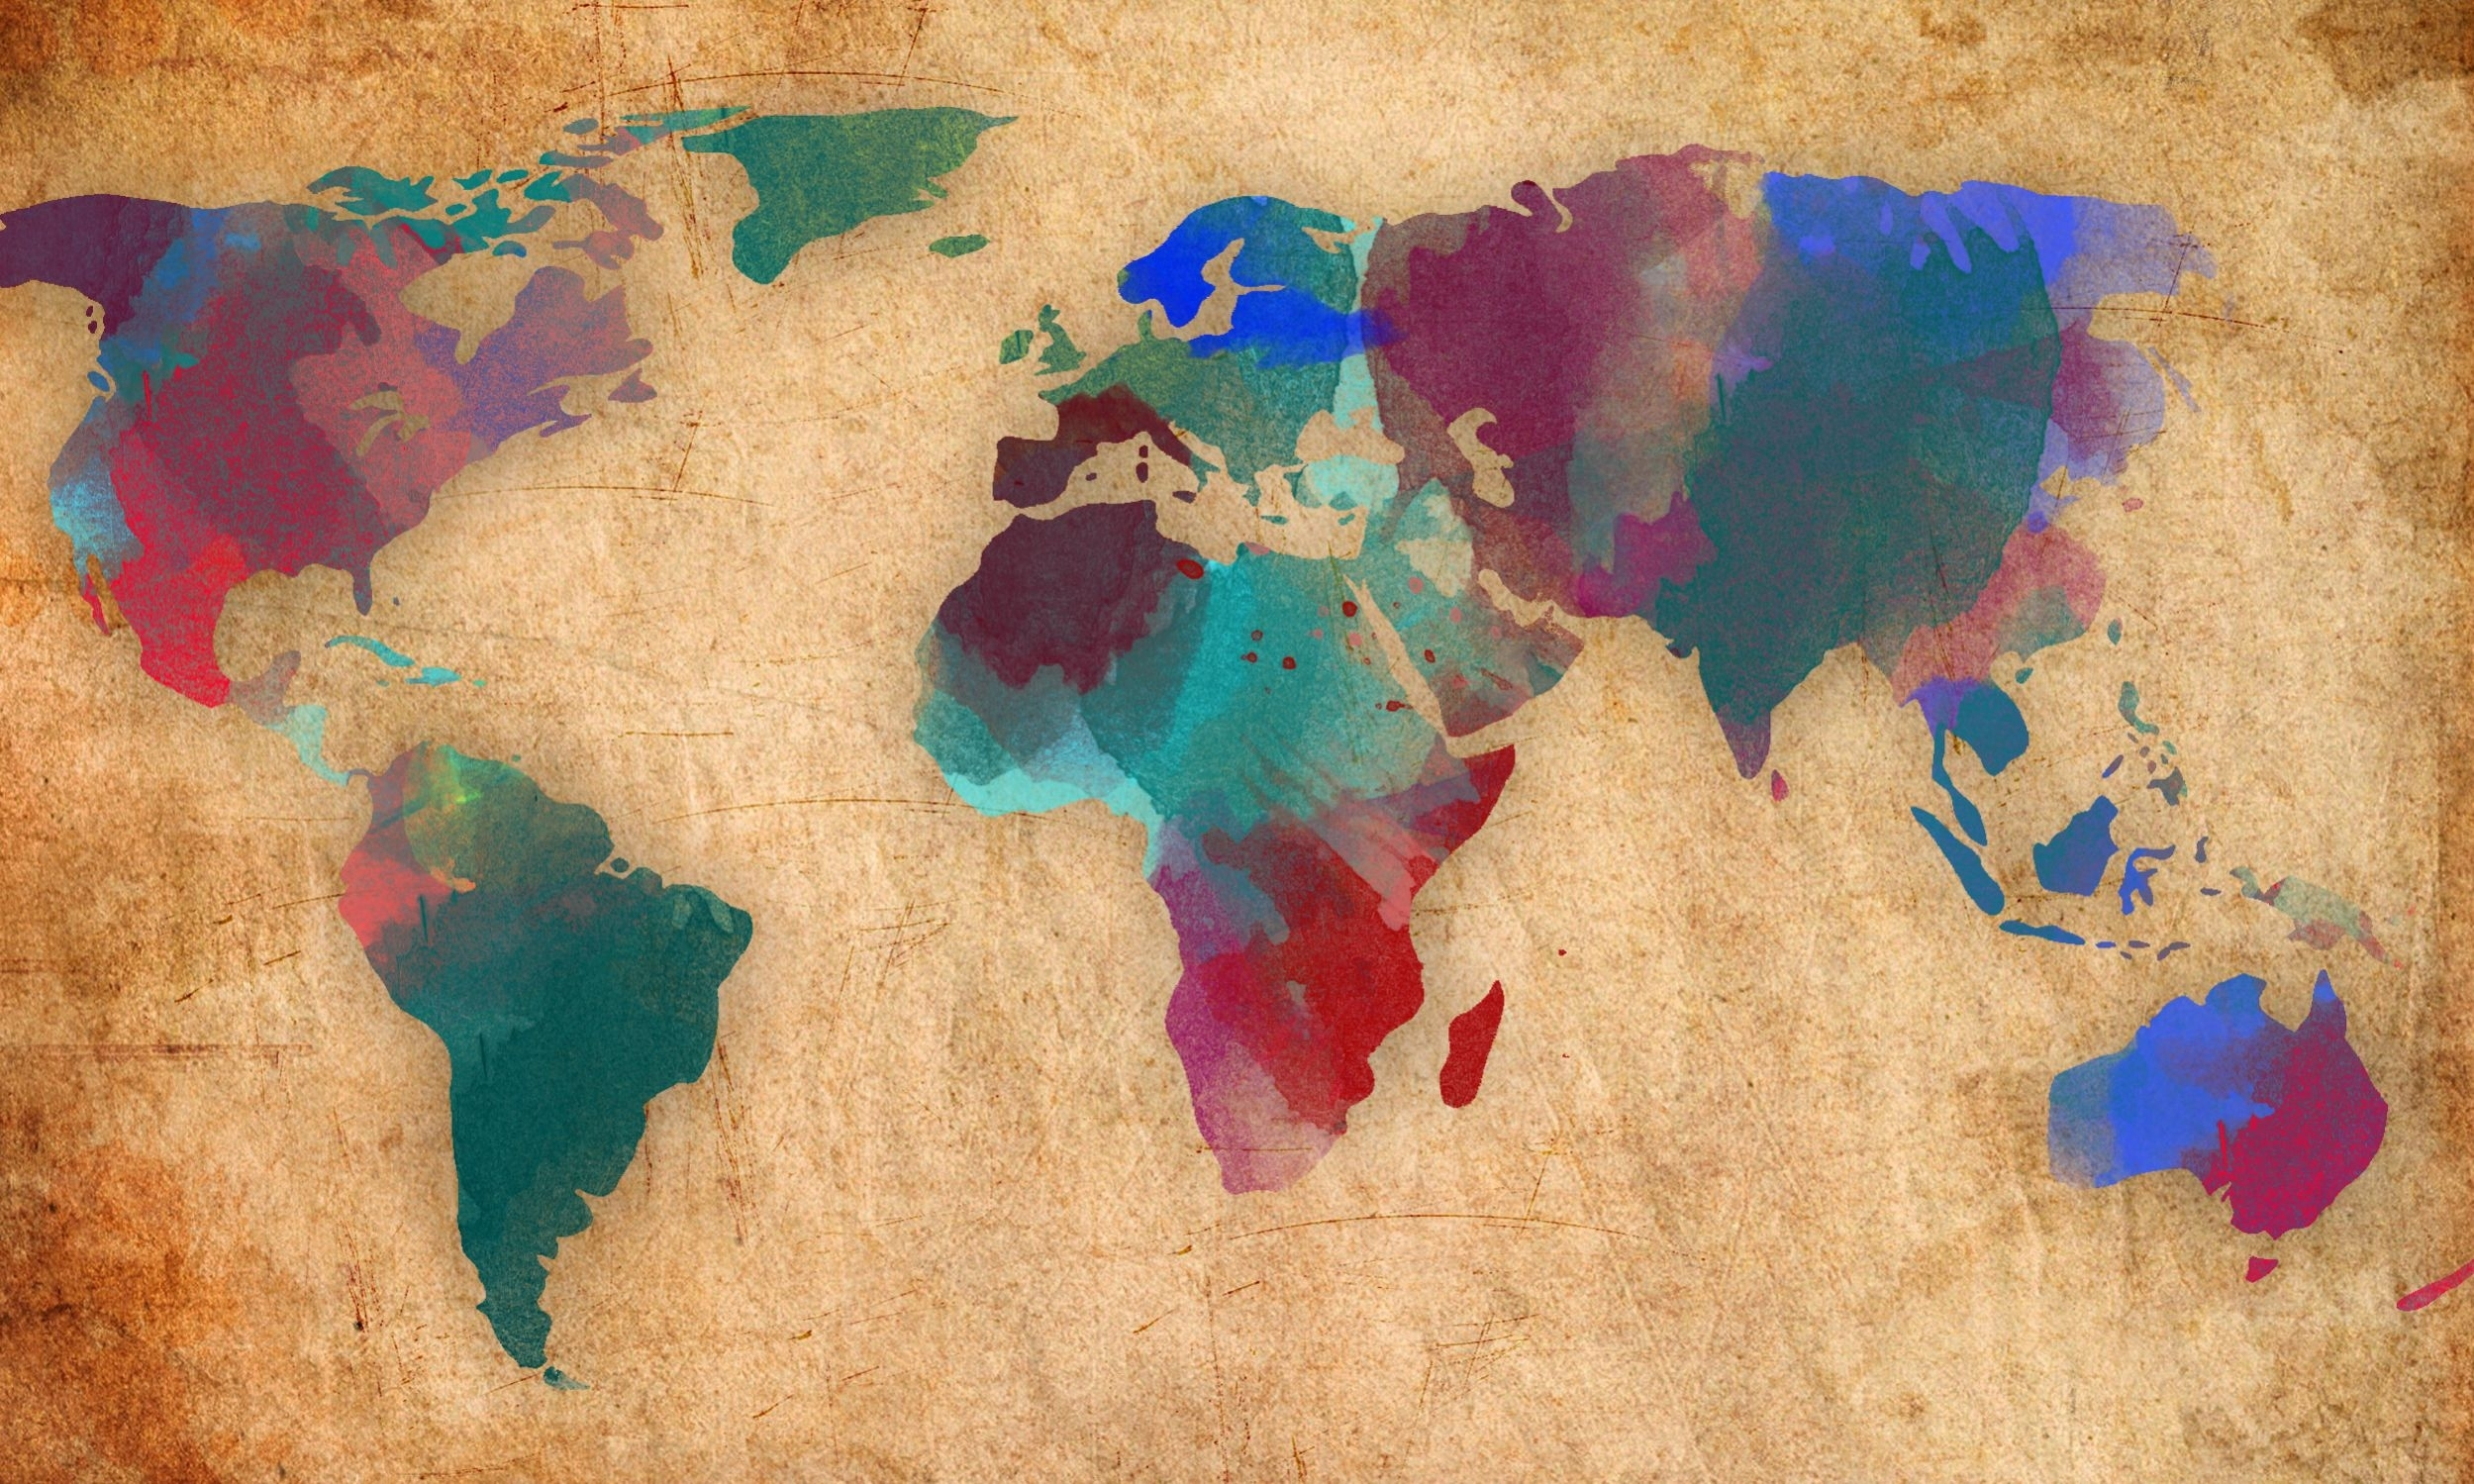 10 top world map laptop wallpaper full hd 1080p for pc desktop 10 most popular and newest world map laptop wallpaper for desktop with full hd 1080p 1920 1080 free download gumiabroncs Gallery